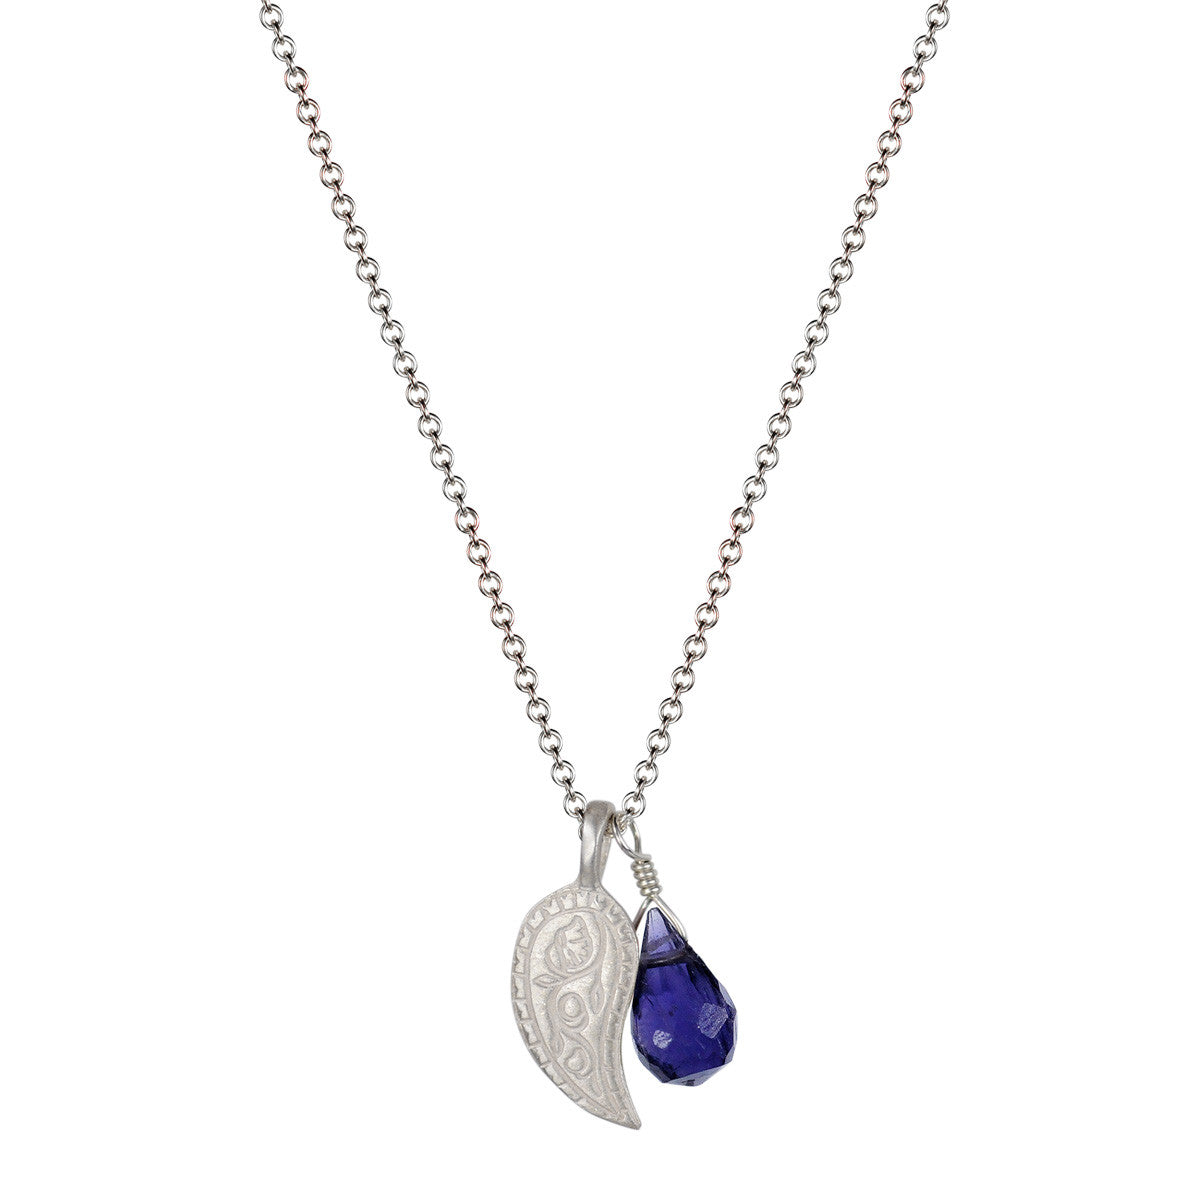 Sterling Silver Paisley Trinket Pendant with Iolite bead